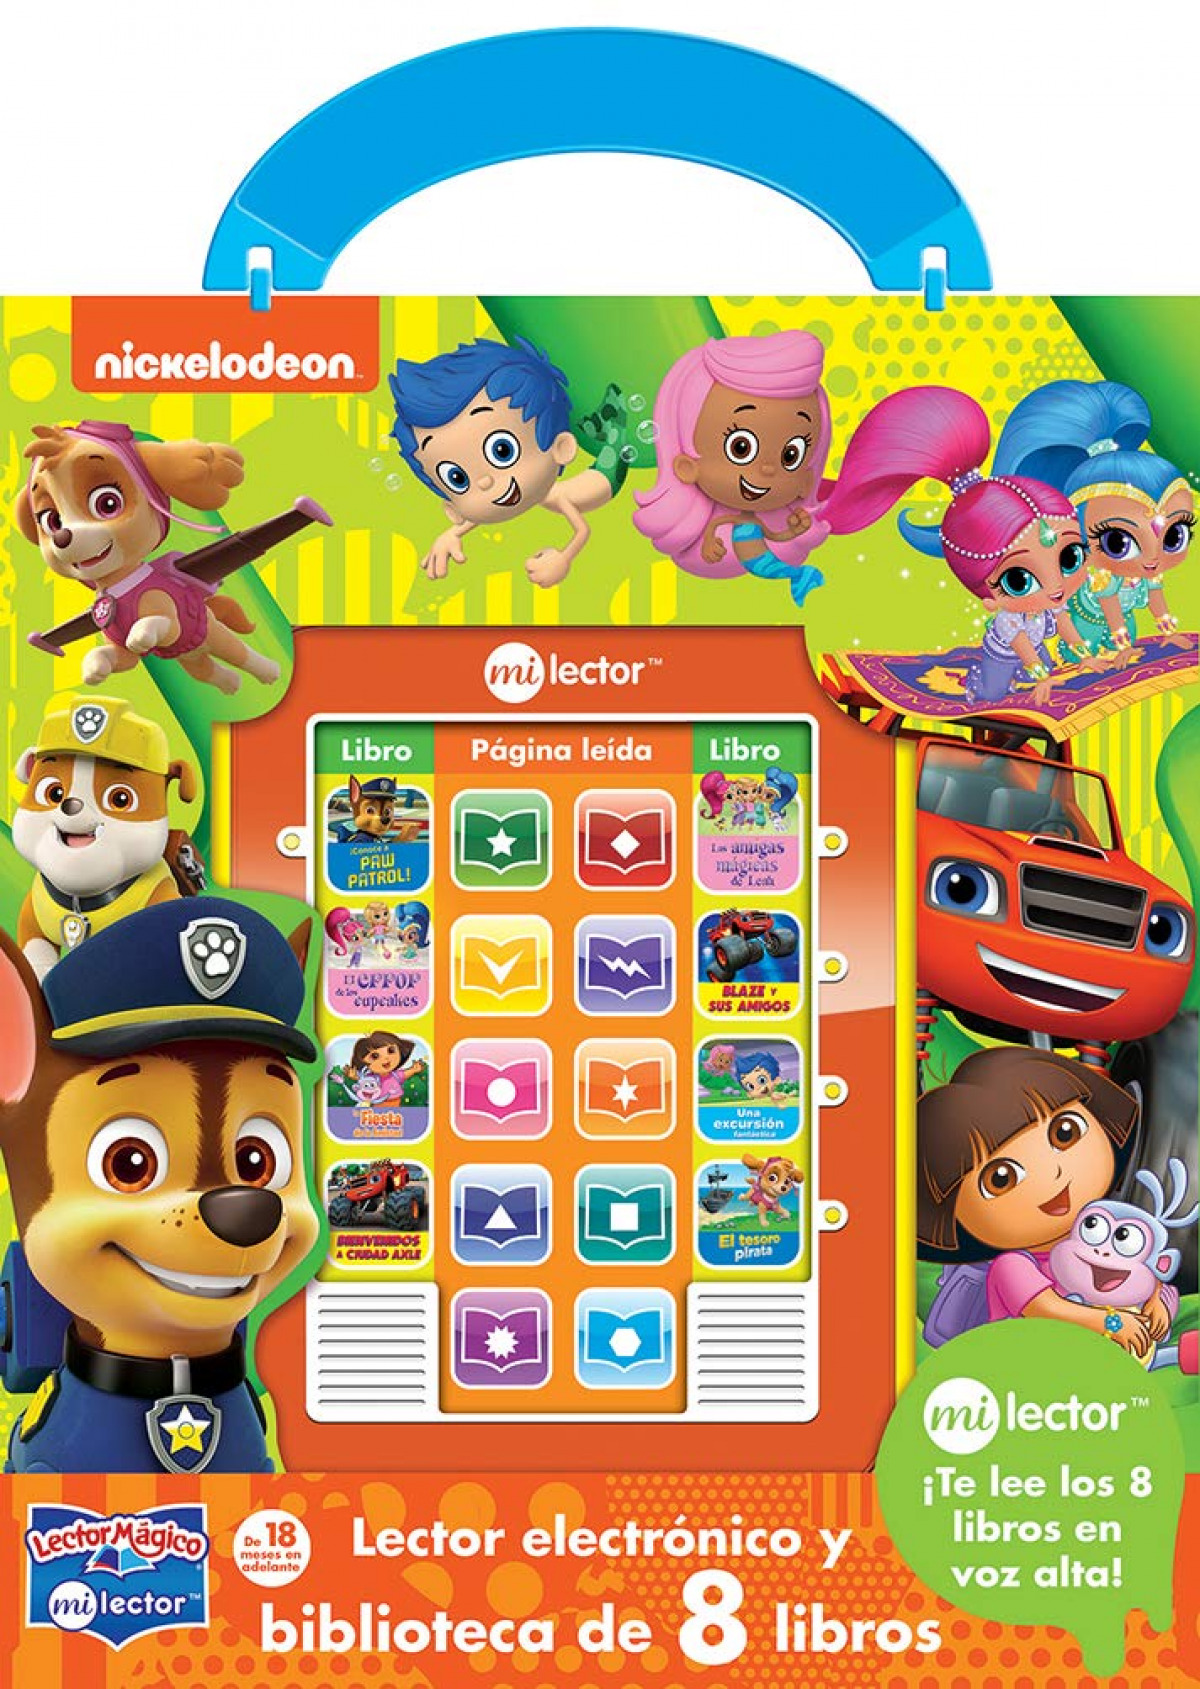 LECTOR MAGICO NICK JR.